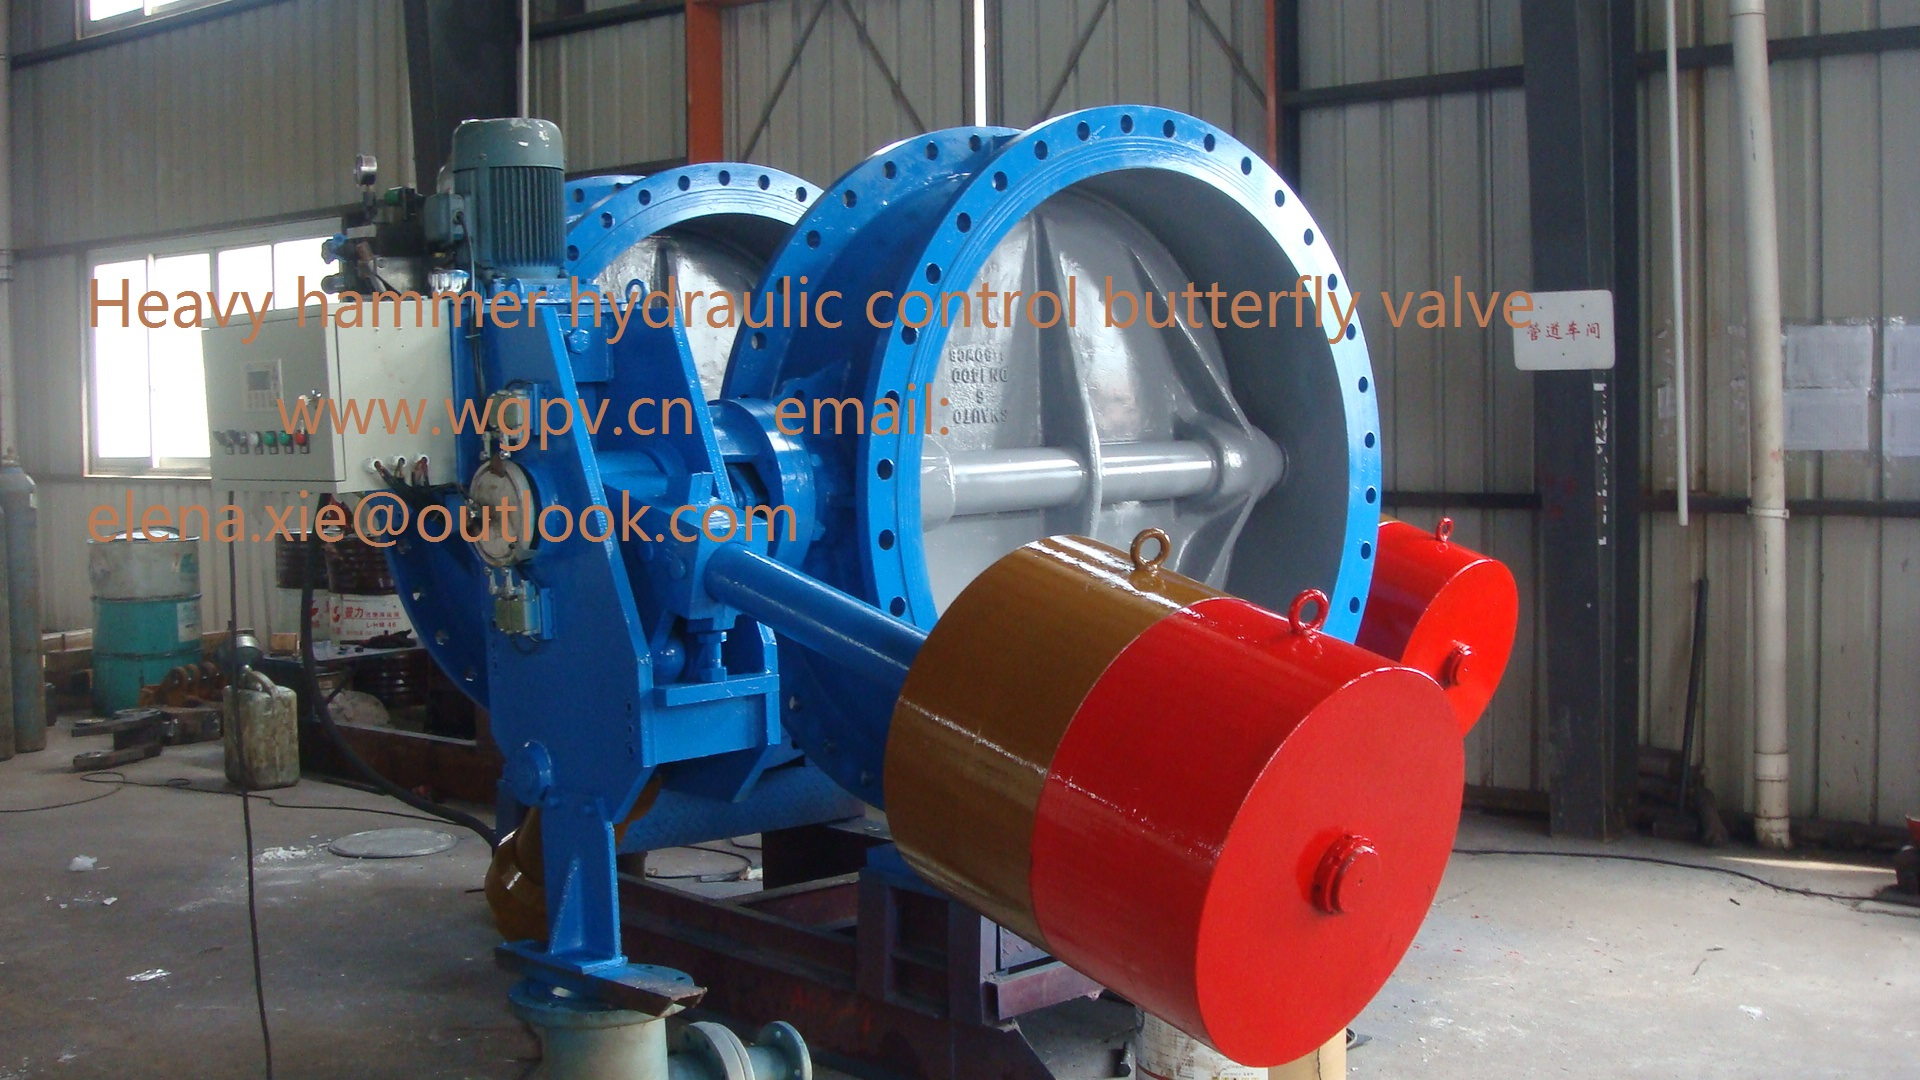 counter weight type hydraulic control butterfly valve for small power plant